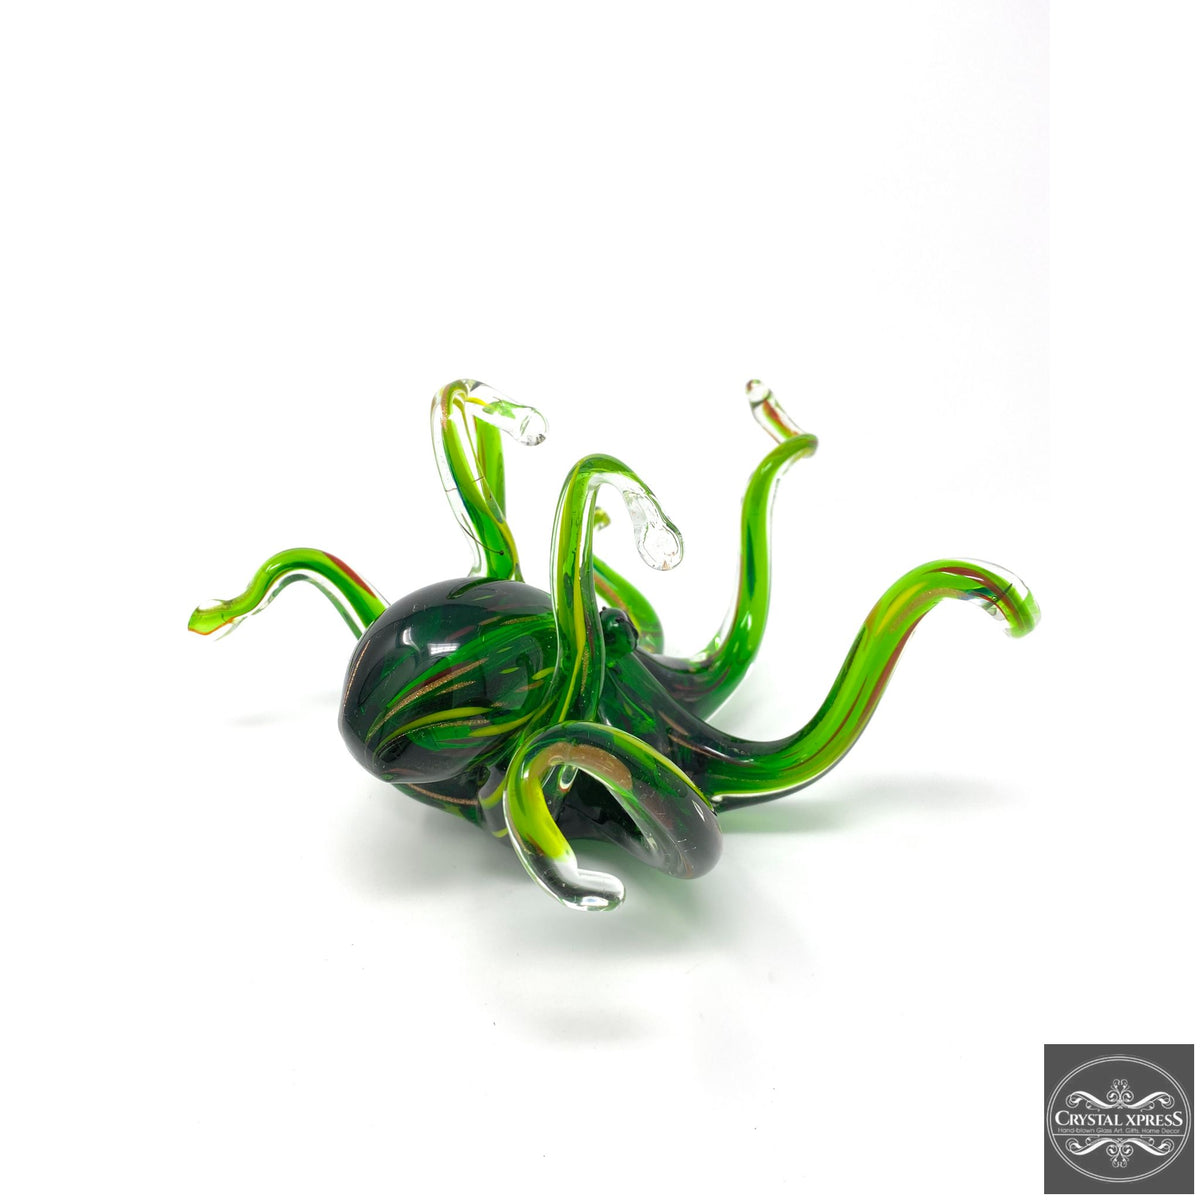 "New 10"" Beautiful Hand Blown Glass Life Like Bright Green Octopus Sculpture Figurine Sea CreatureCrystal Xpress"